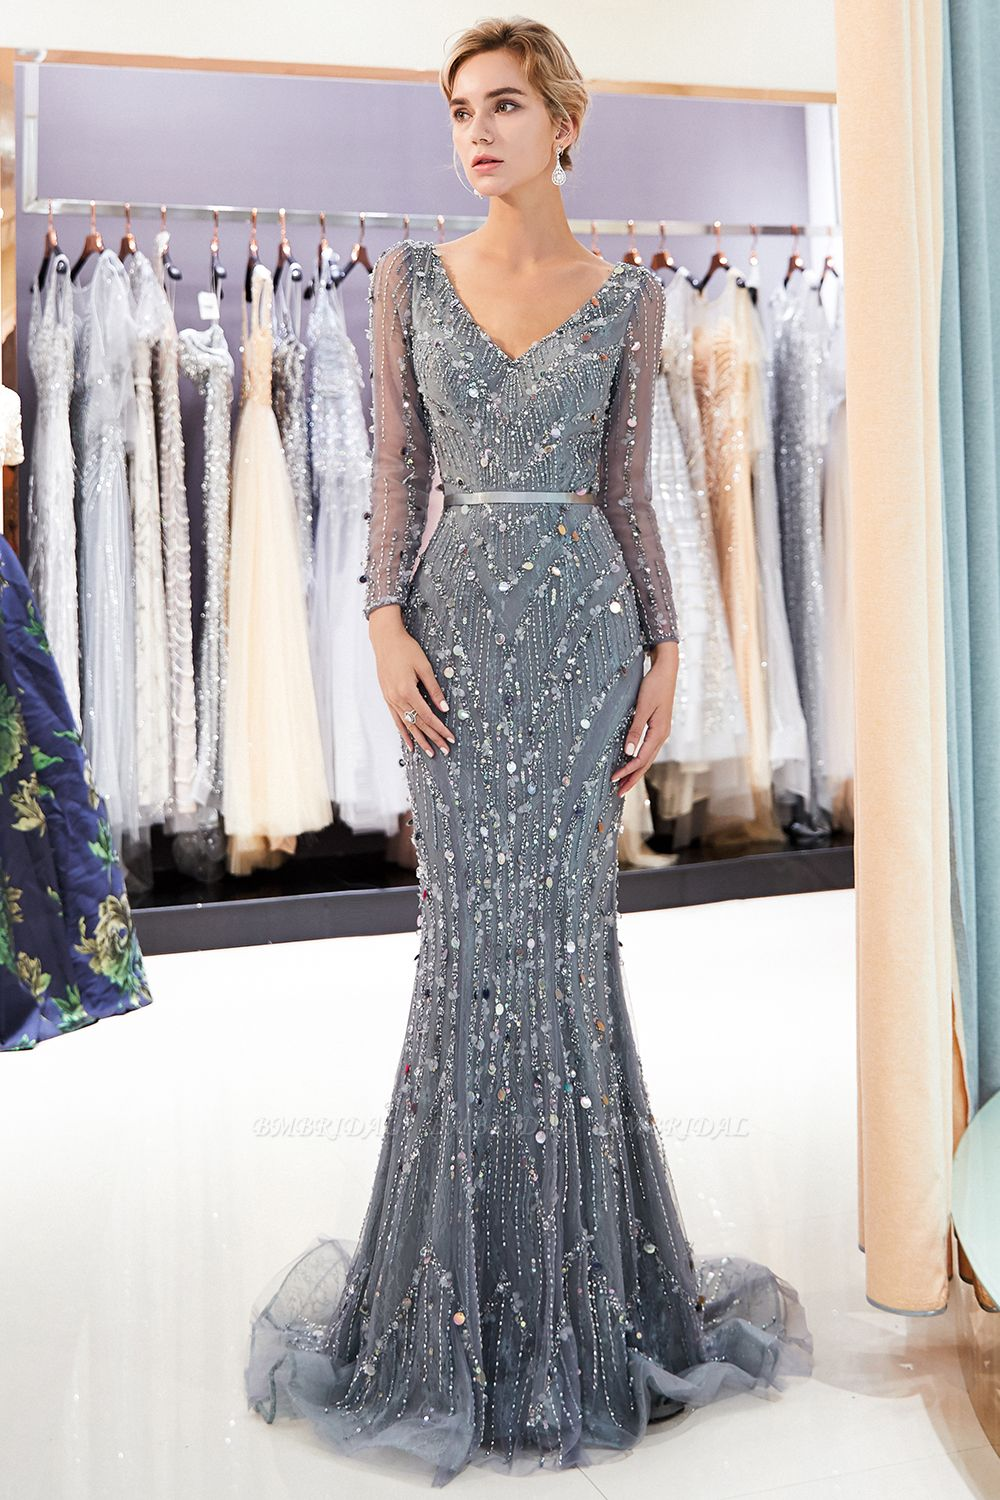 Chic Mermaid Long Sleeves Prom Dresses V-neck Sequins Evening Gowns with Sash